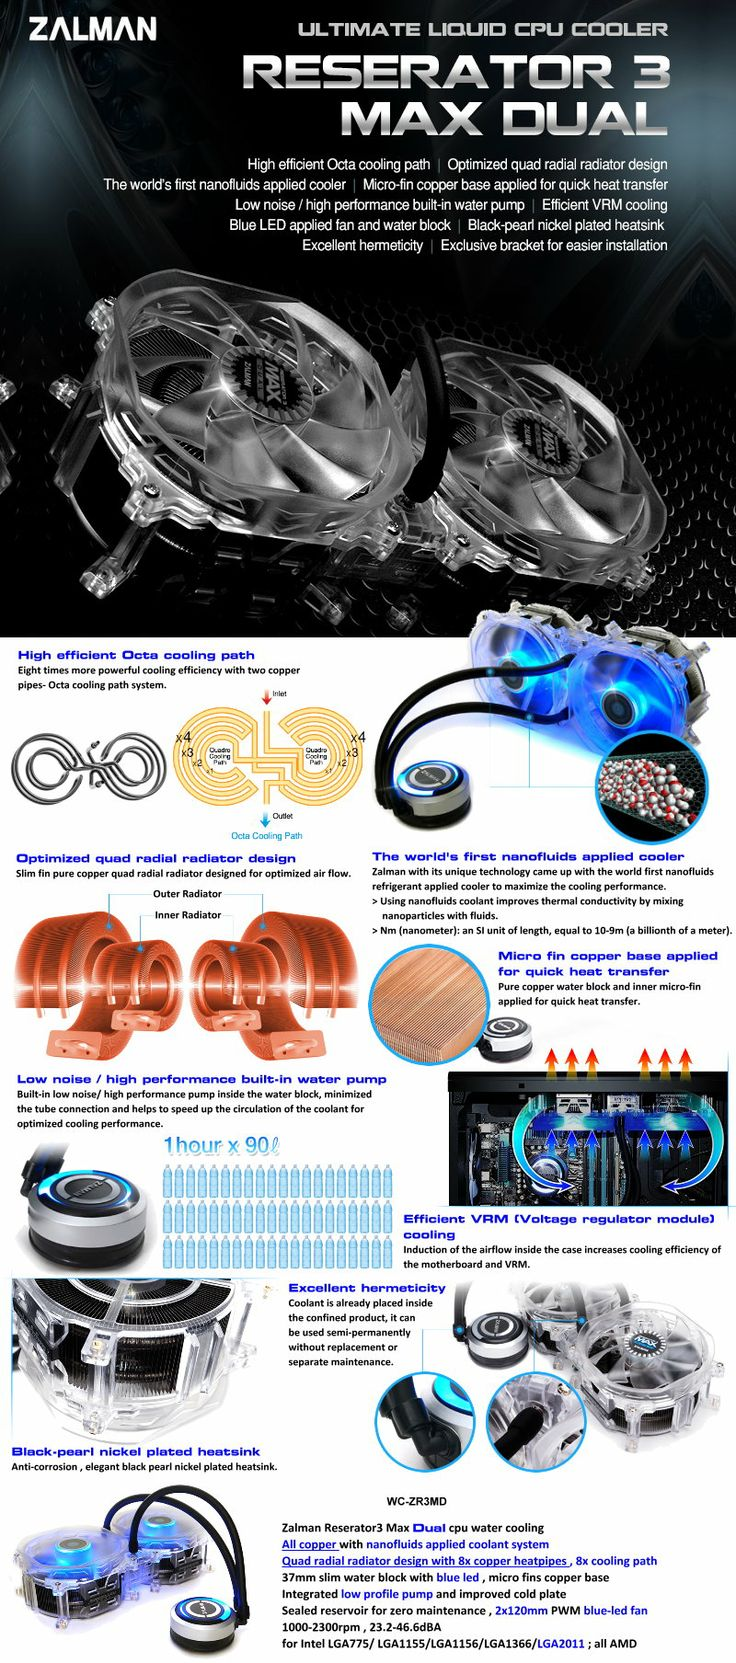 reserator 3 max dual ultimate liquid CPU cooler